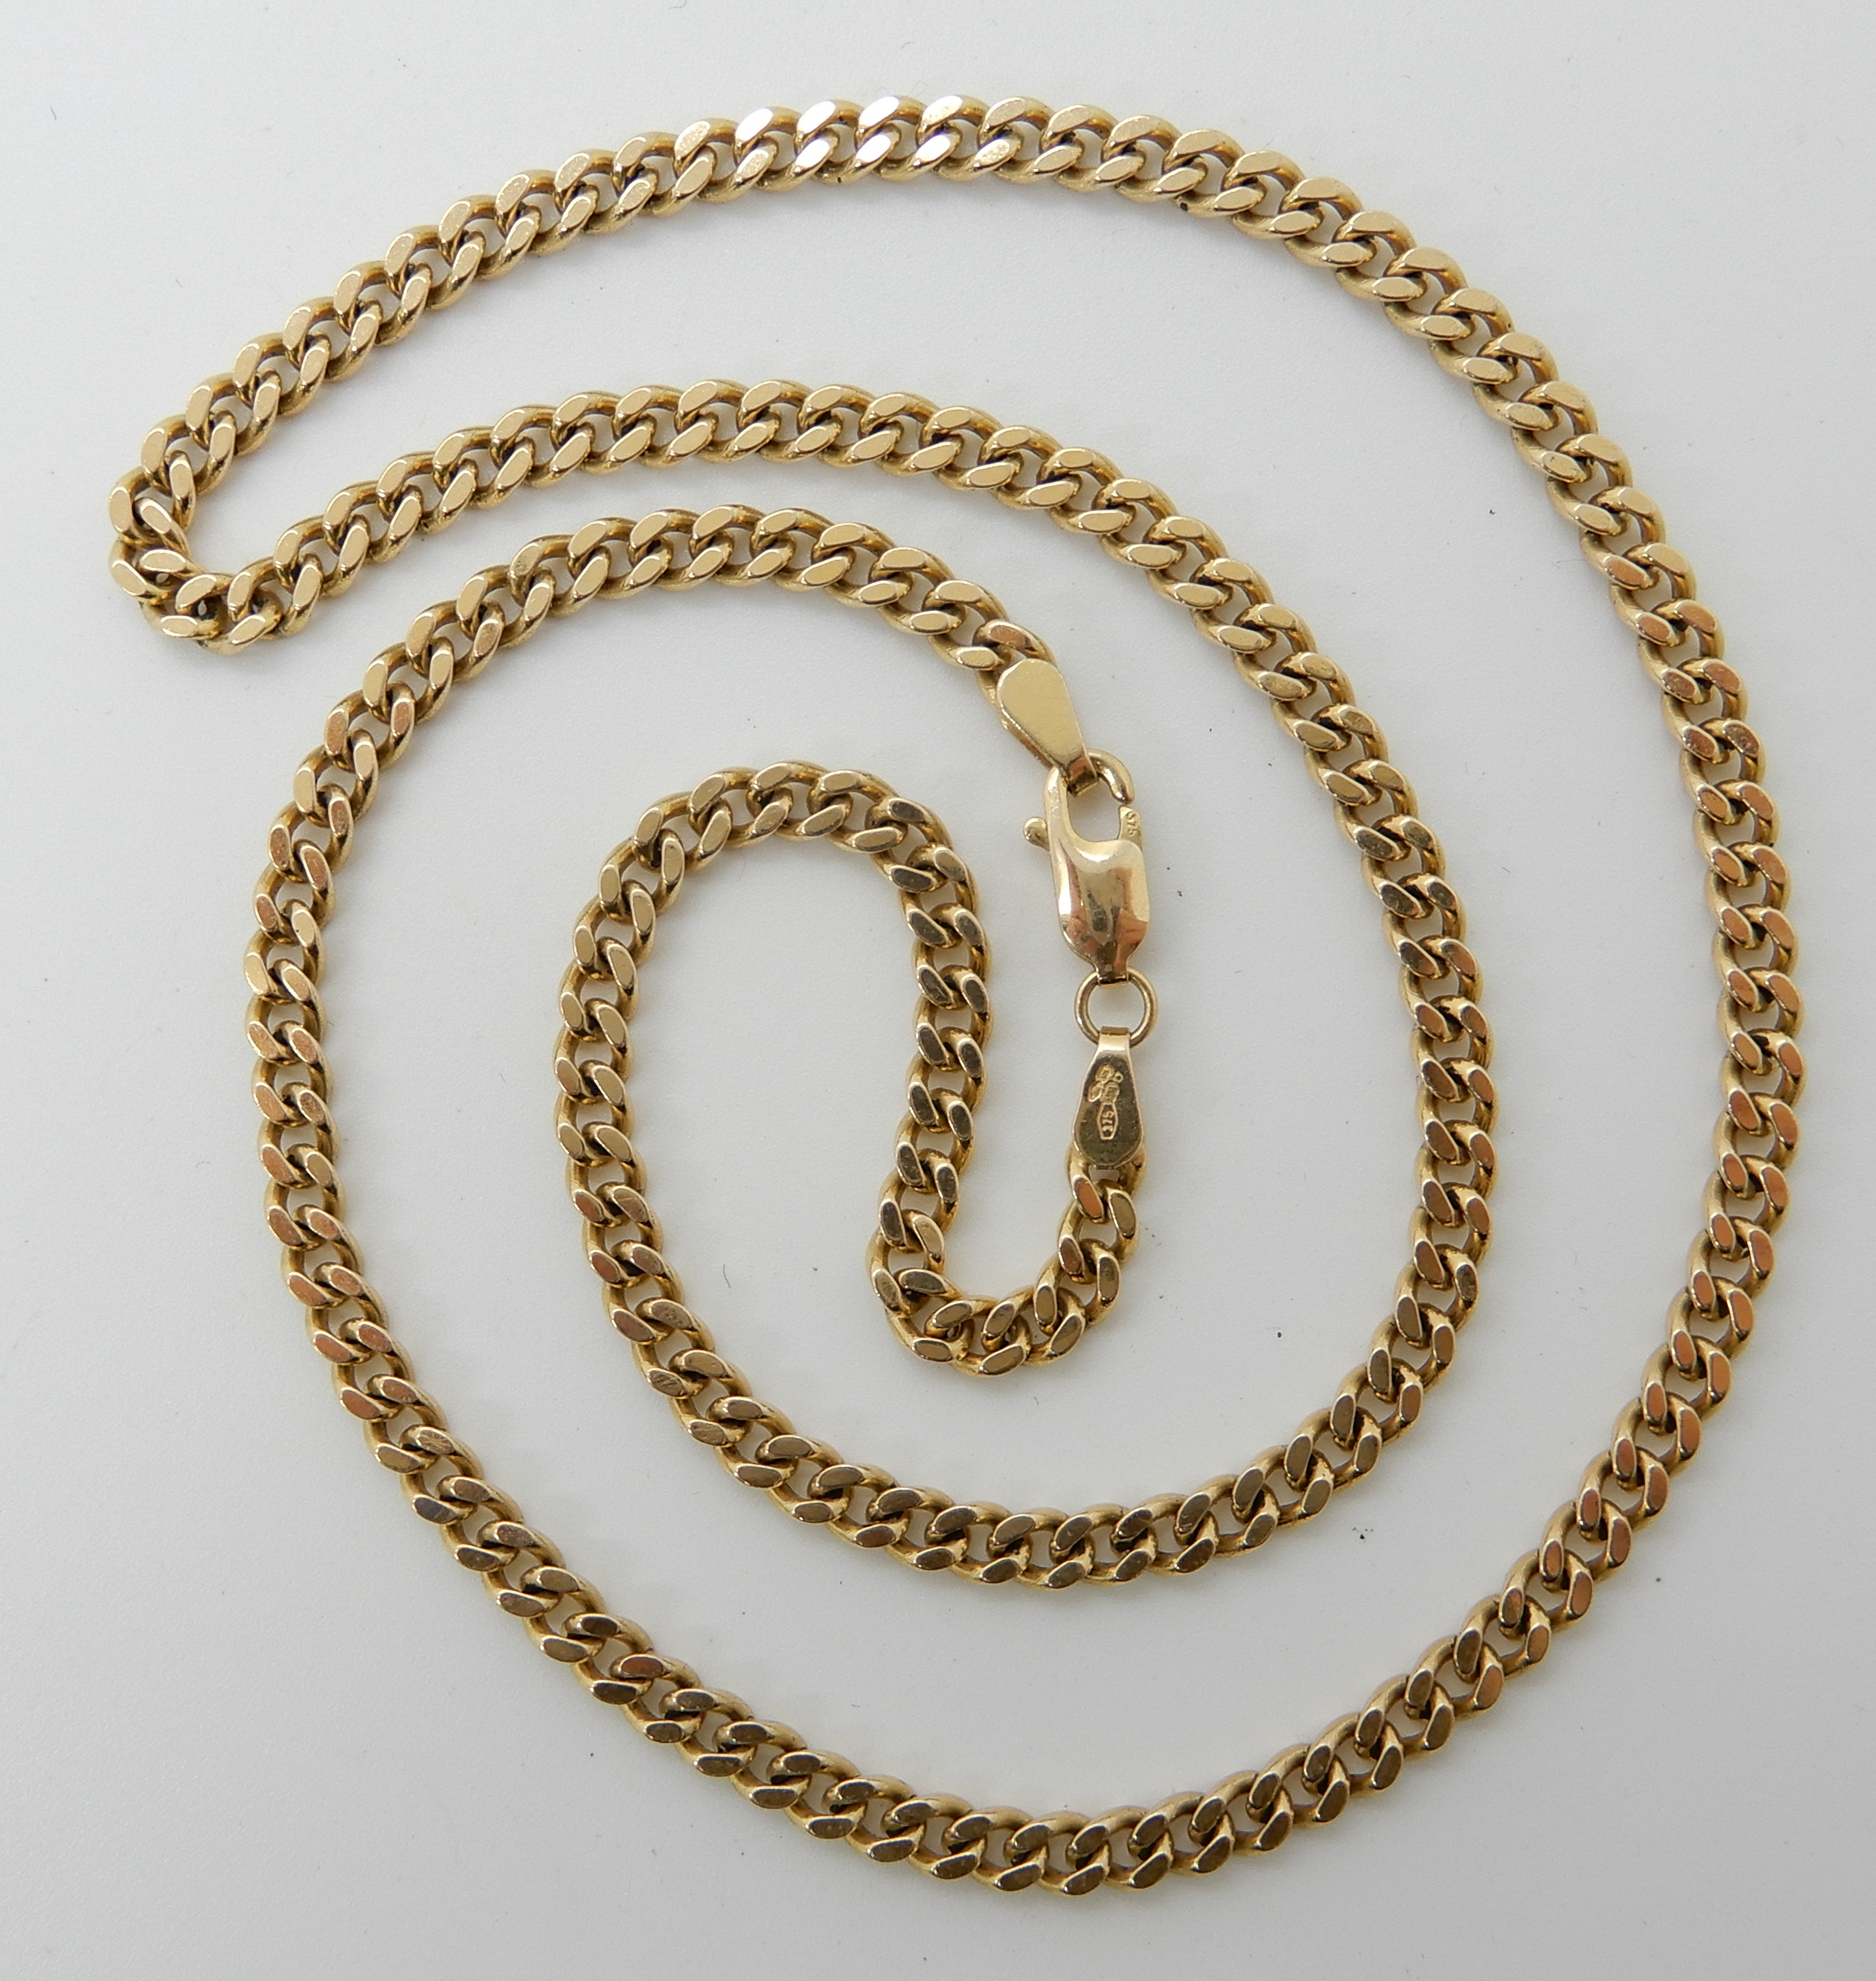 Lot 60 - A 9ct curb link necklace 46cm, weight 14.7gms Condition Report: Available upon request